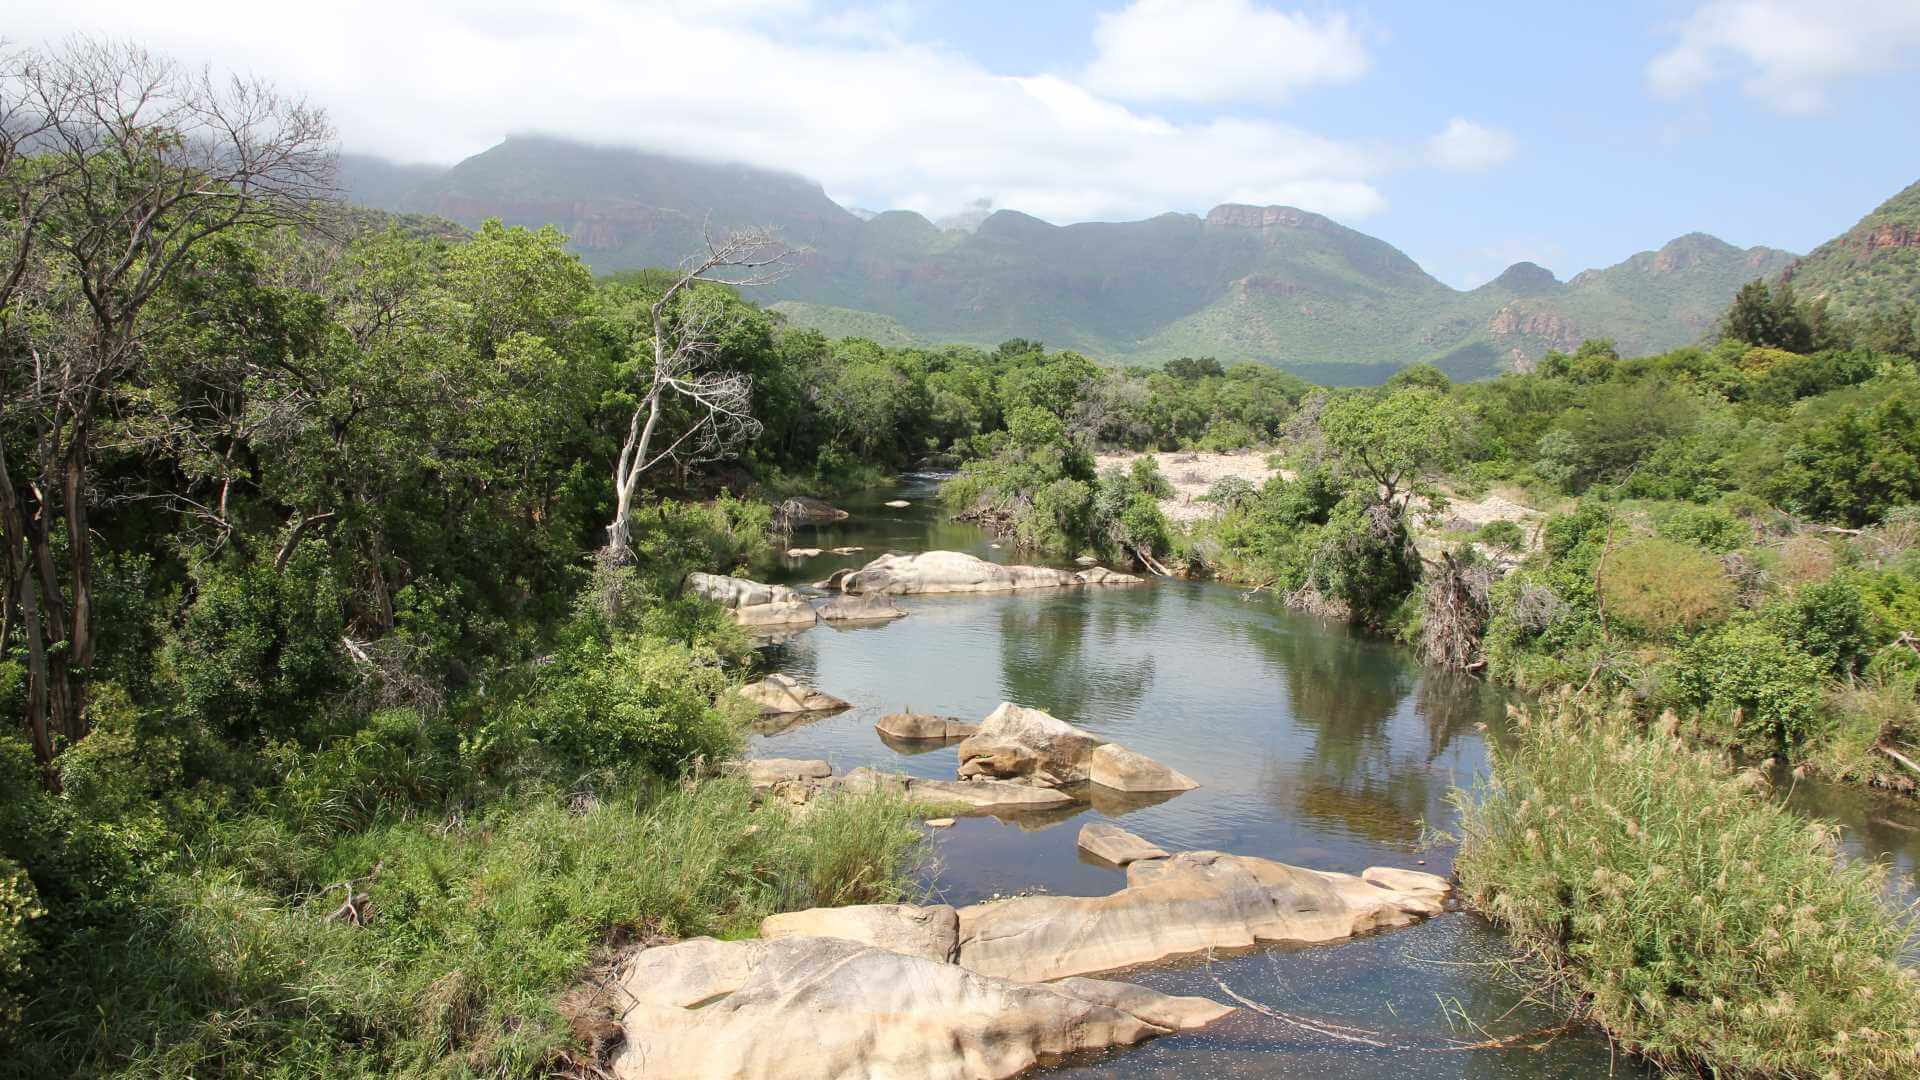 Gentle river in front of mountains, Blyde River, South Africa